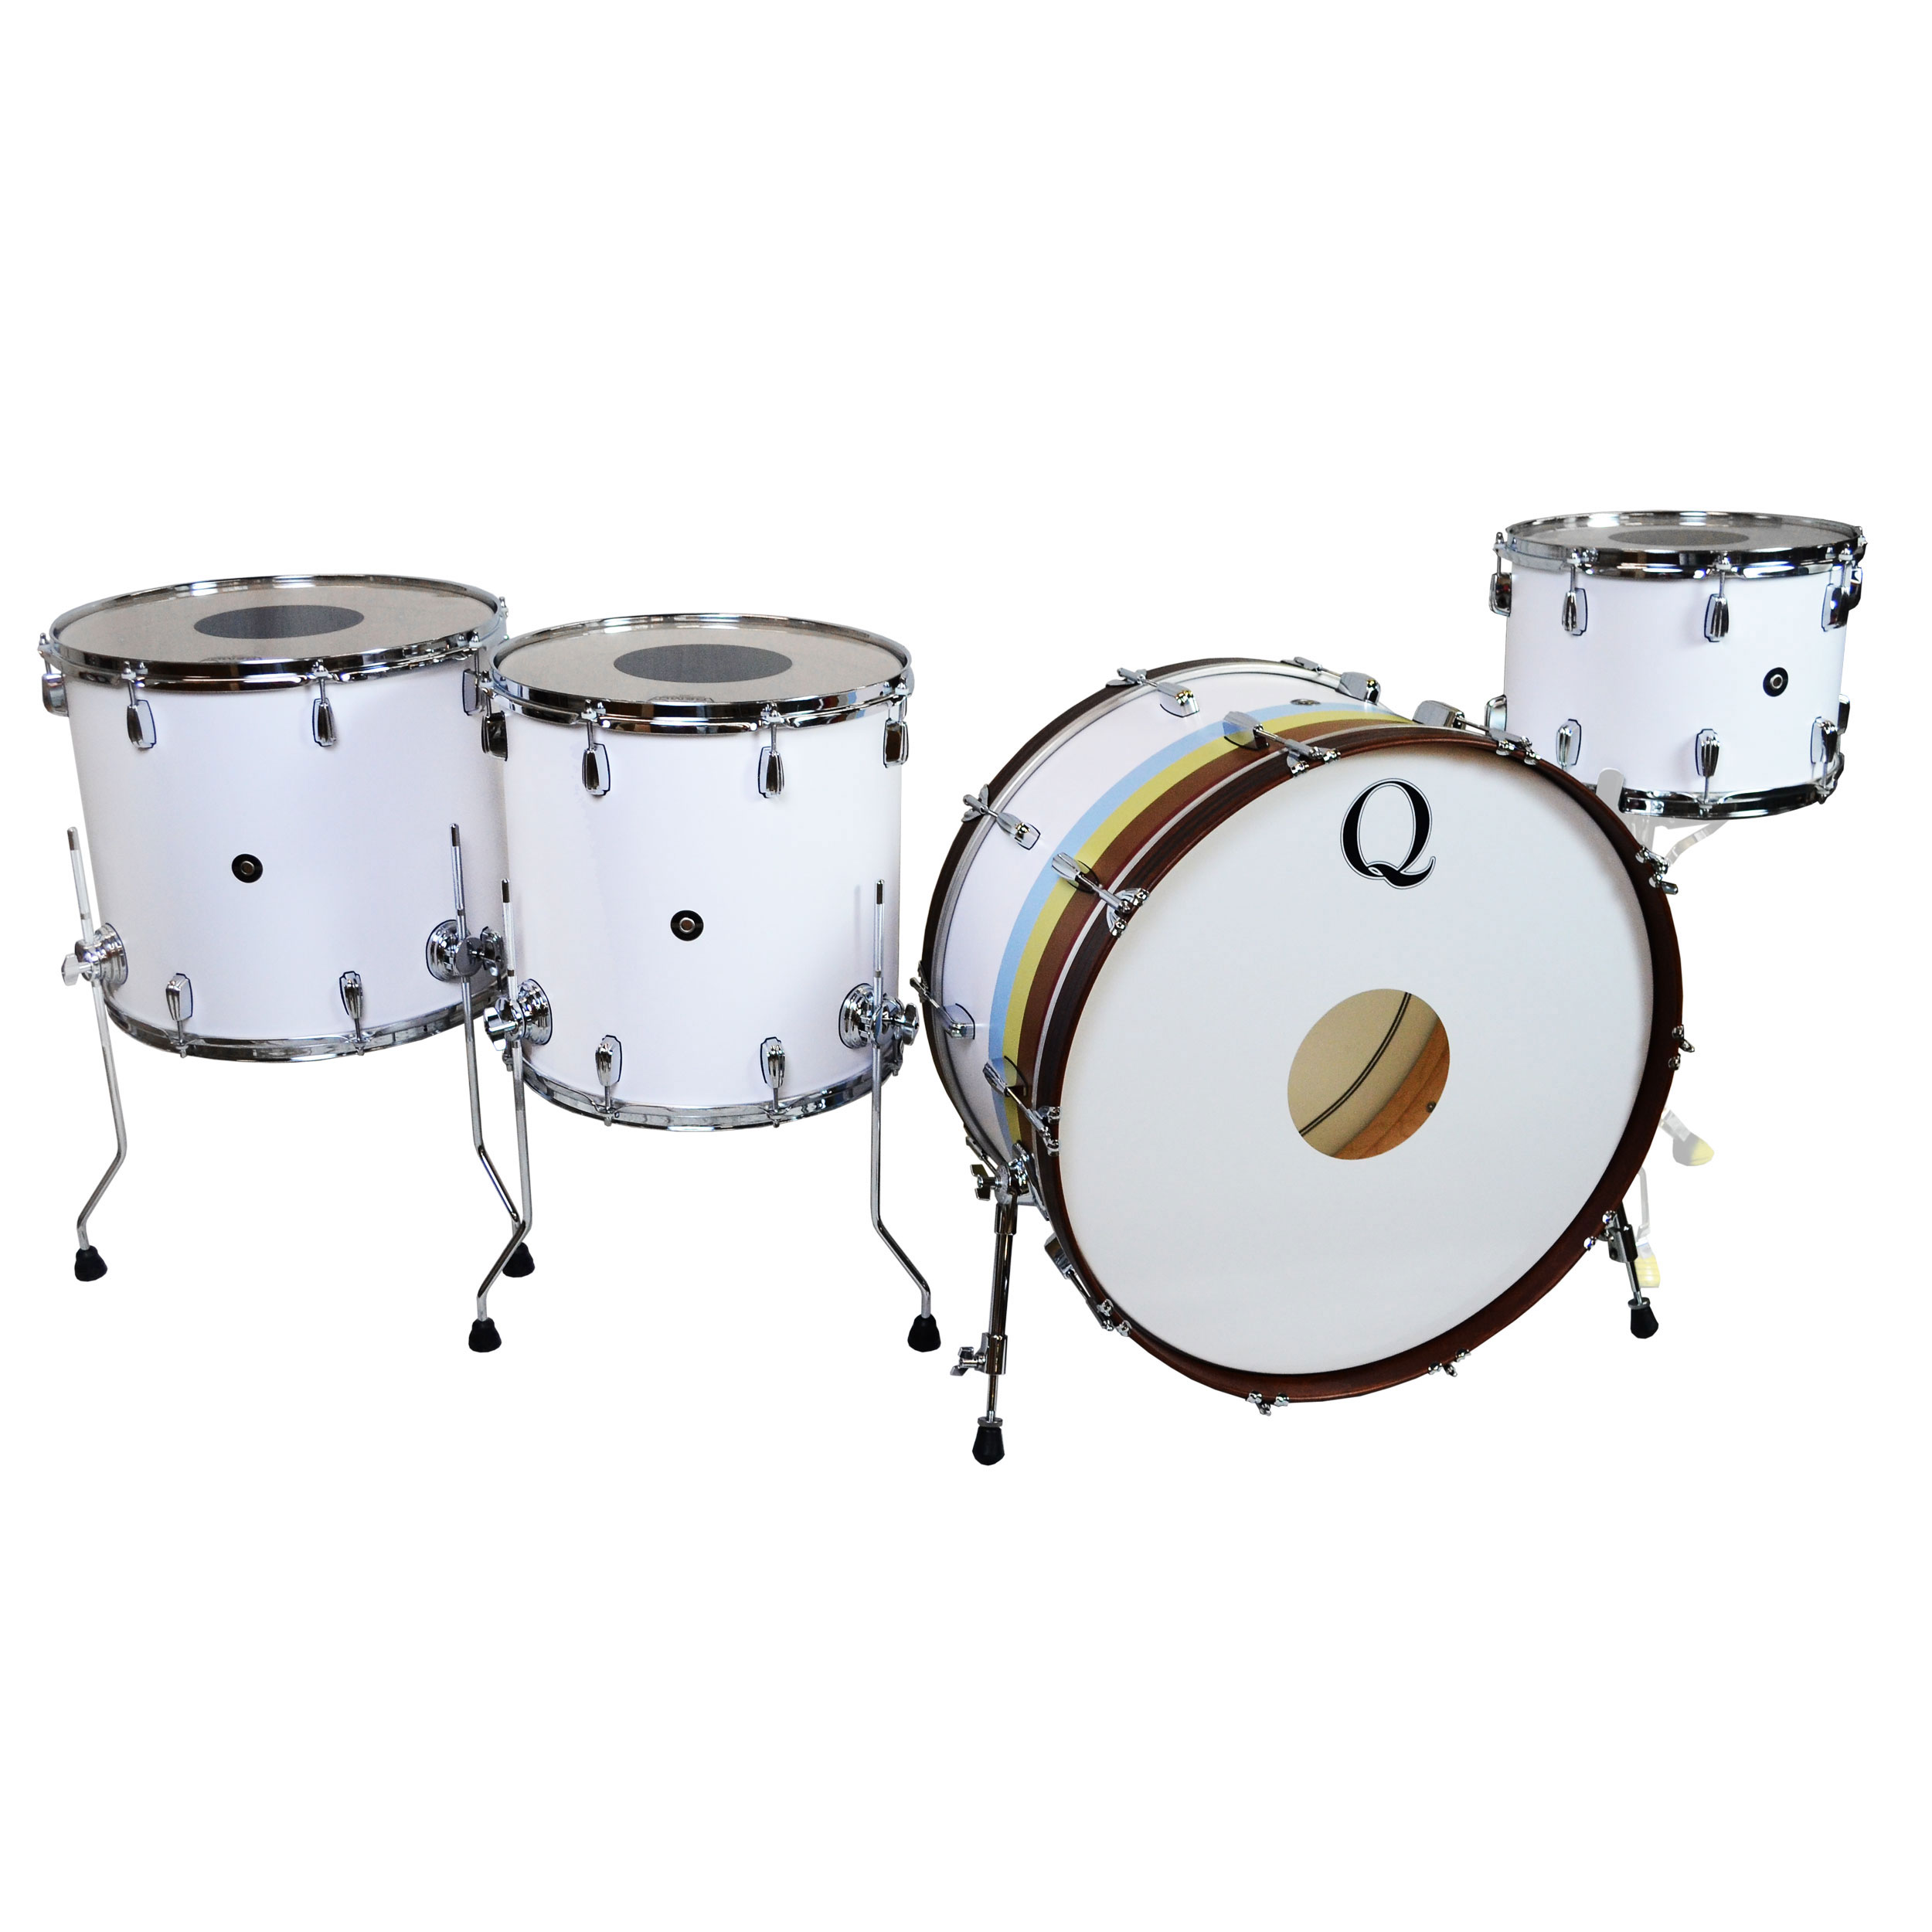 "Q Drum Co. Maple 4-Piece Drum Set Shell Pack (26"" Bass, 14/16/18"" Toms) in Flat White & 1974 Stripes"